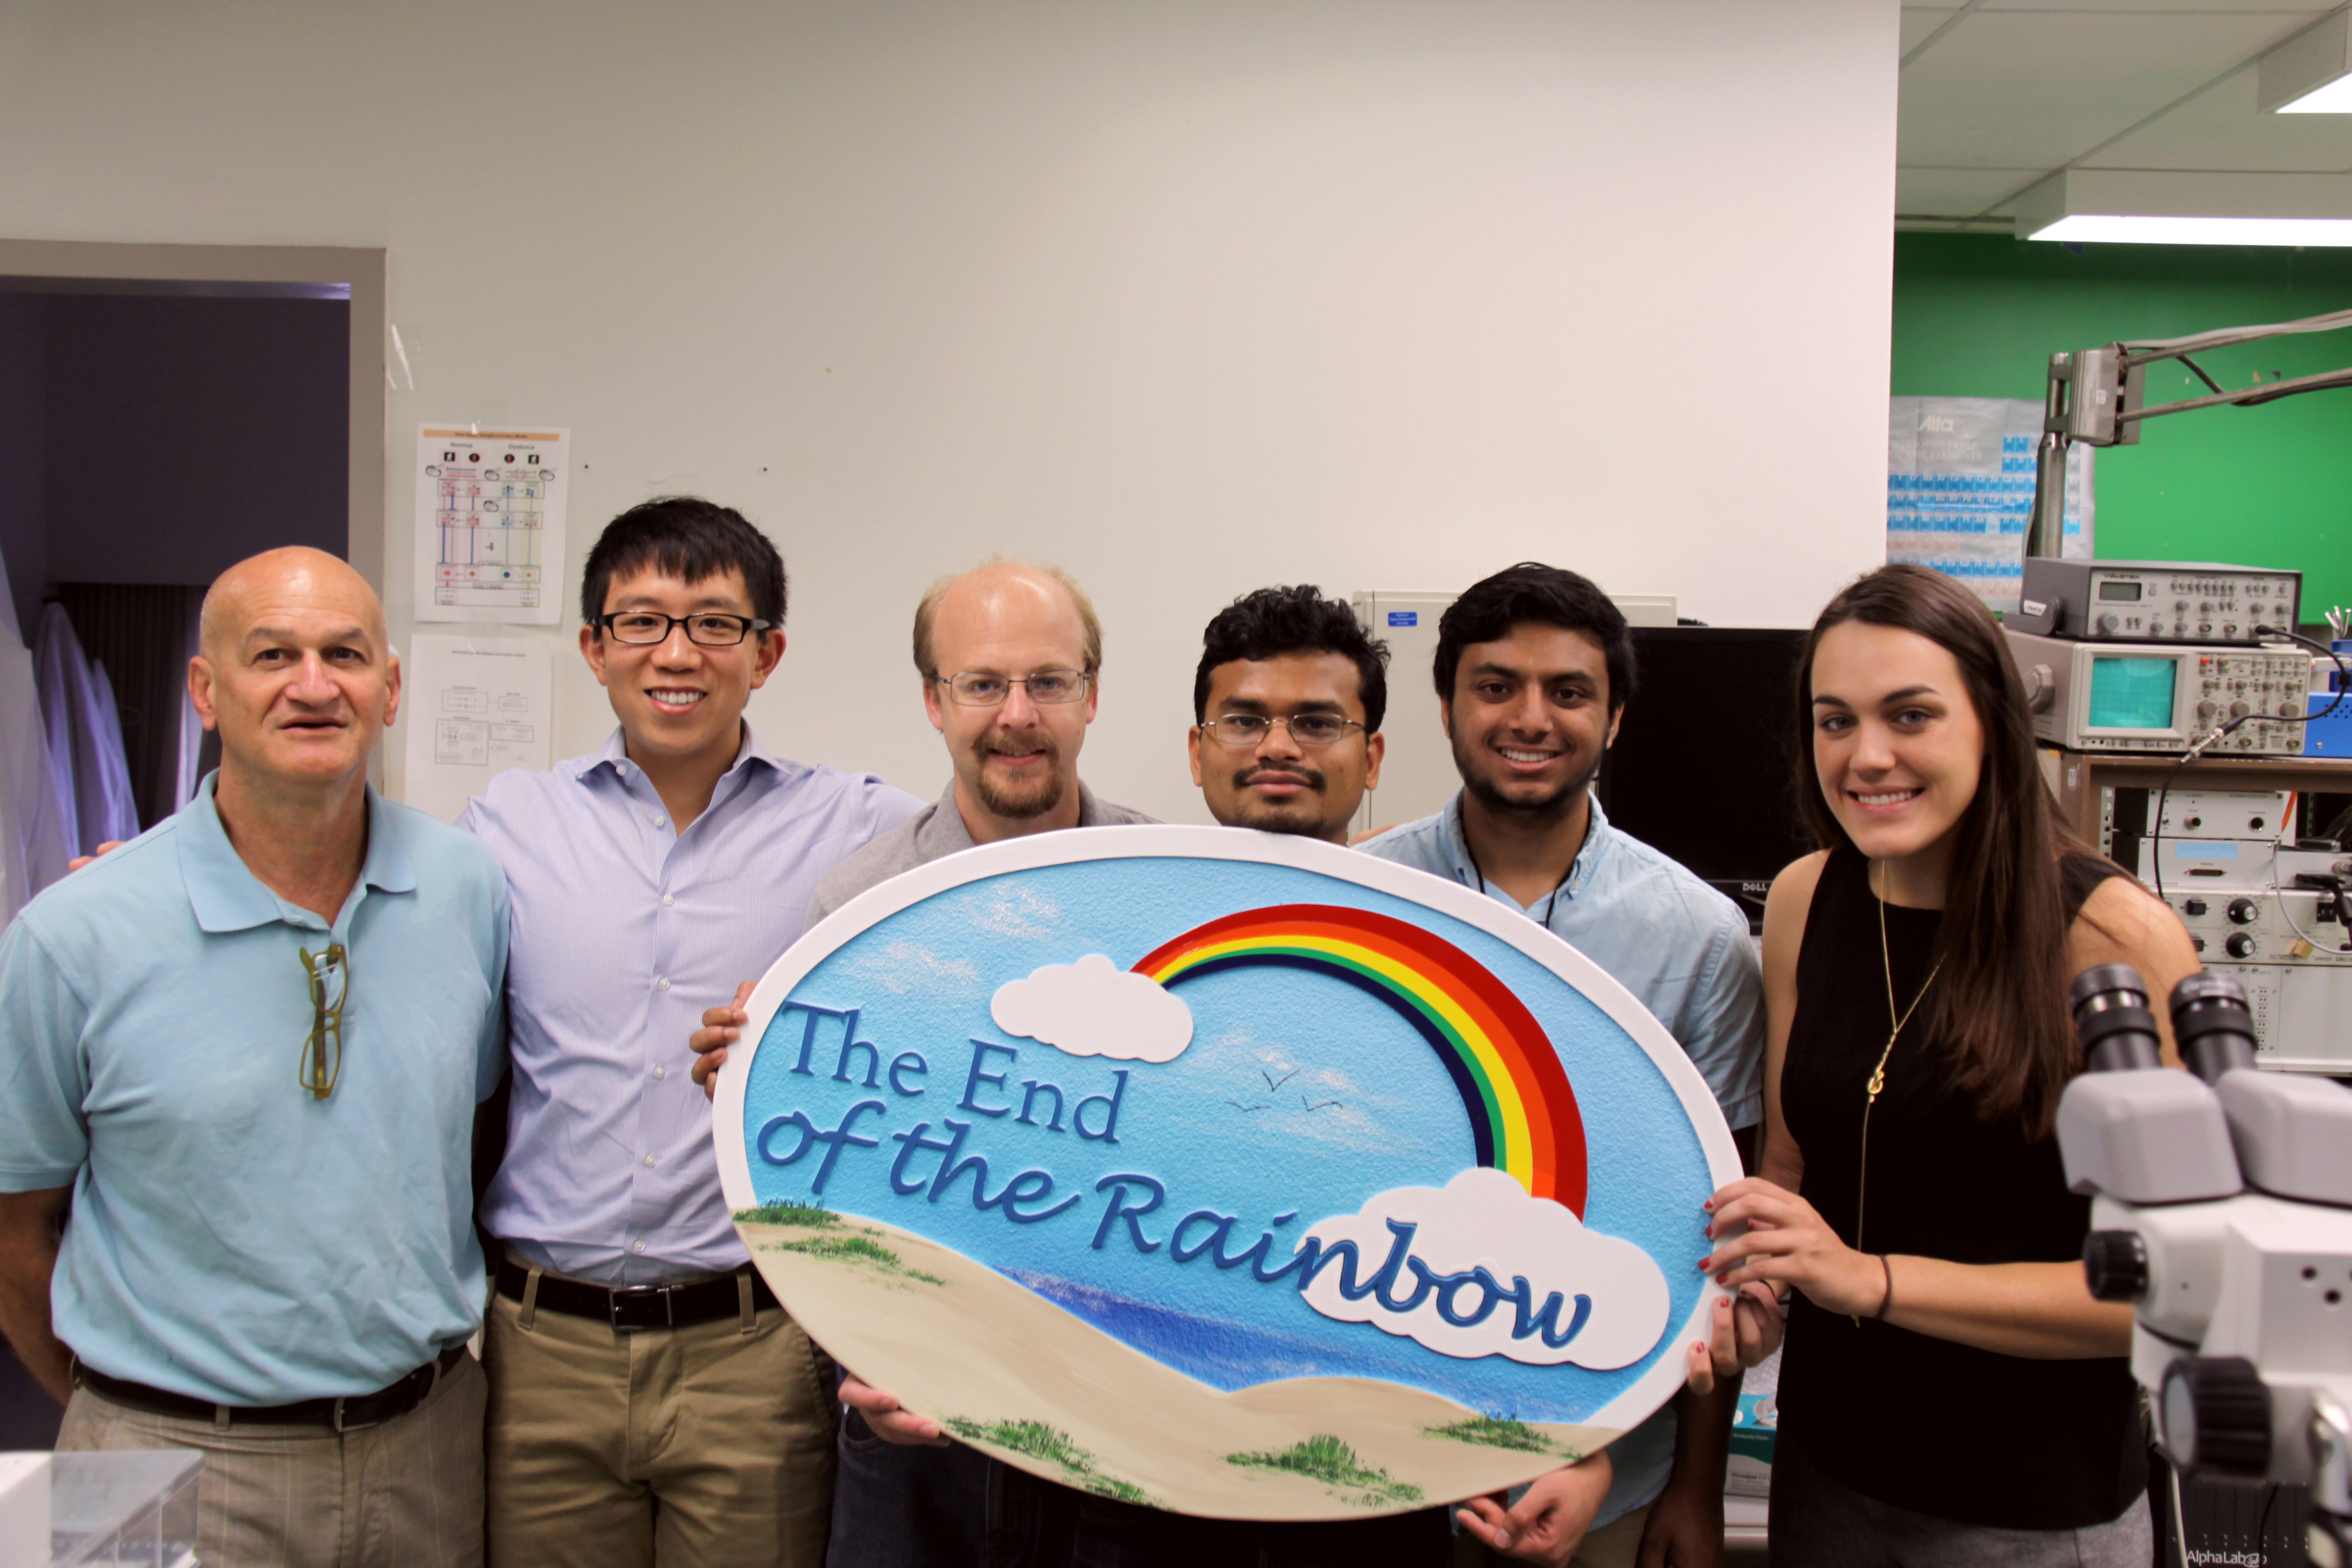 A picture of staff at Dr. Baron's lab holding a sign that reads